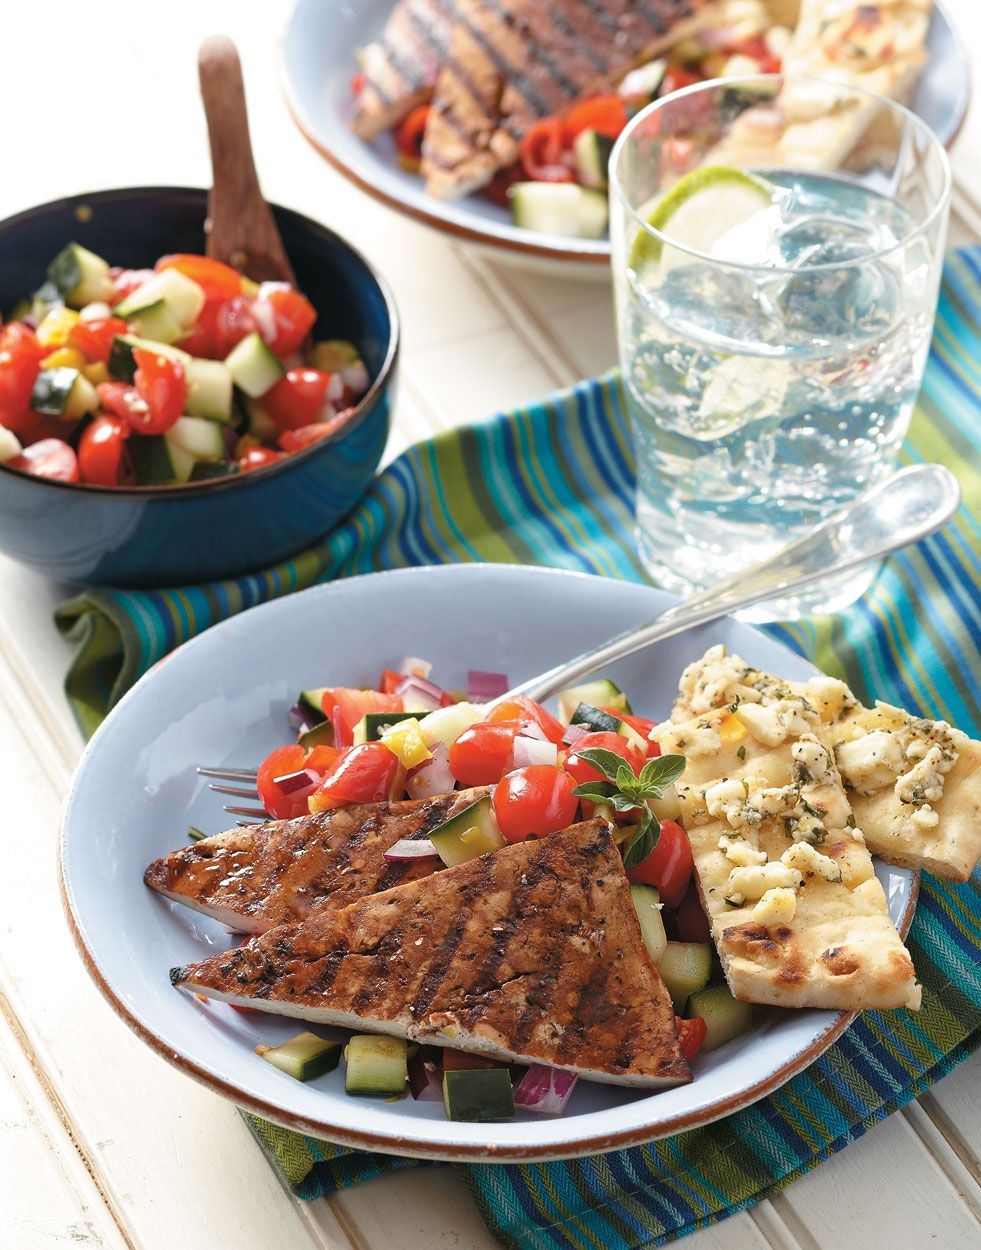 Greek Tofu Steaks Greek Tofu Steaks | Marinated and grilled to perfection, tofu is the perfect protein to pair with a summery Greek salad and cheesy flatbread.